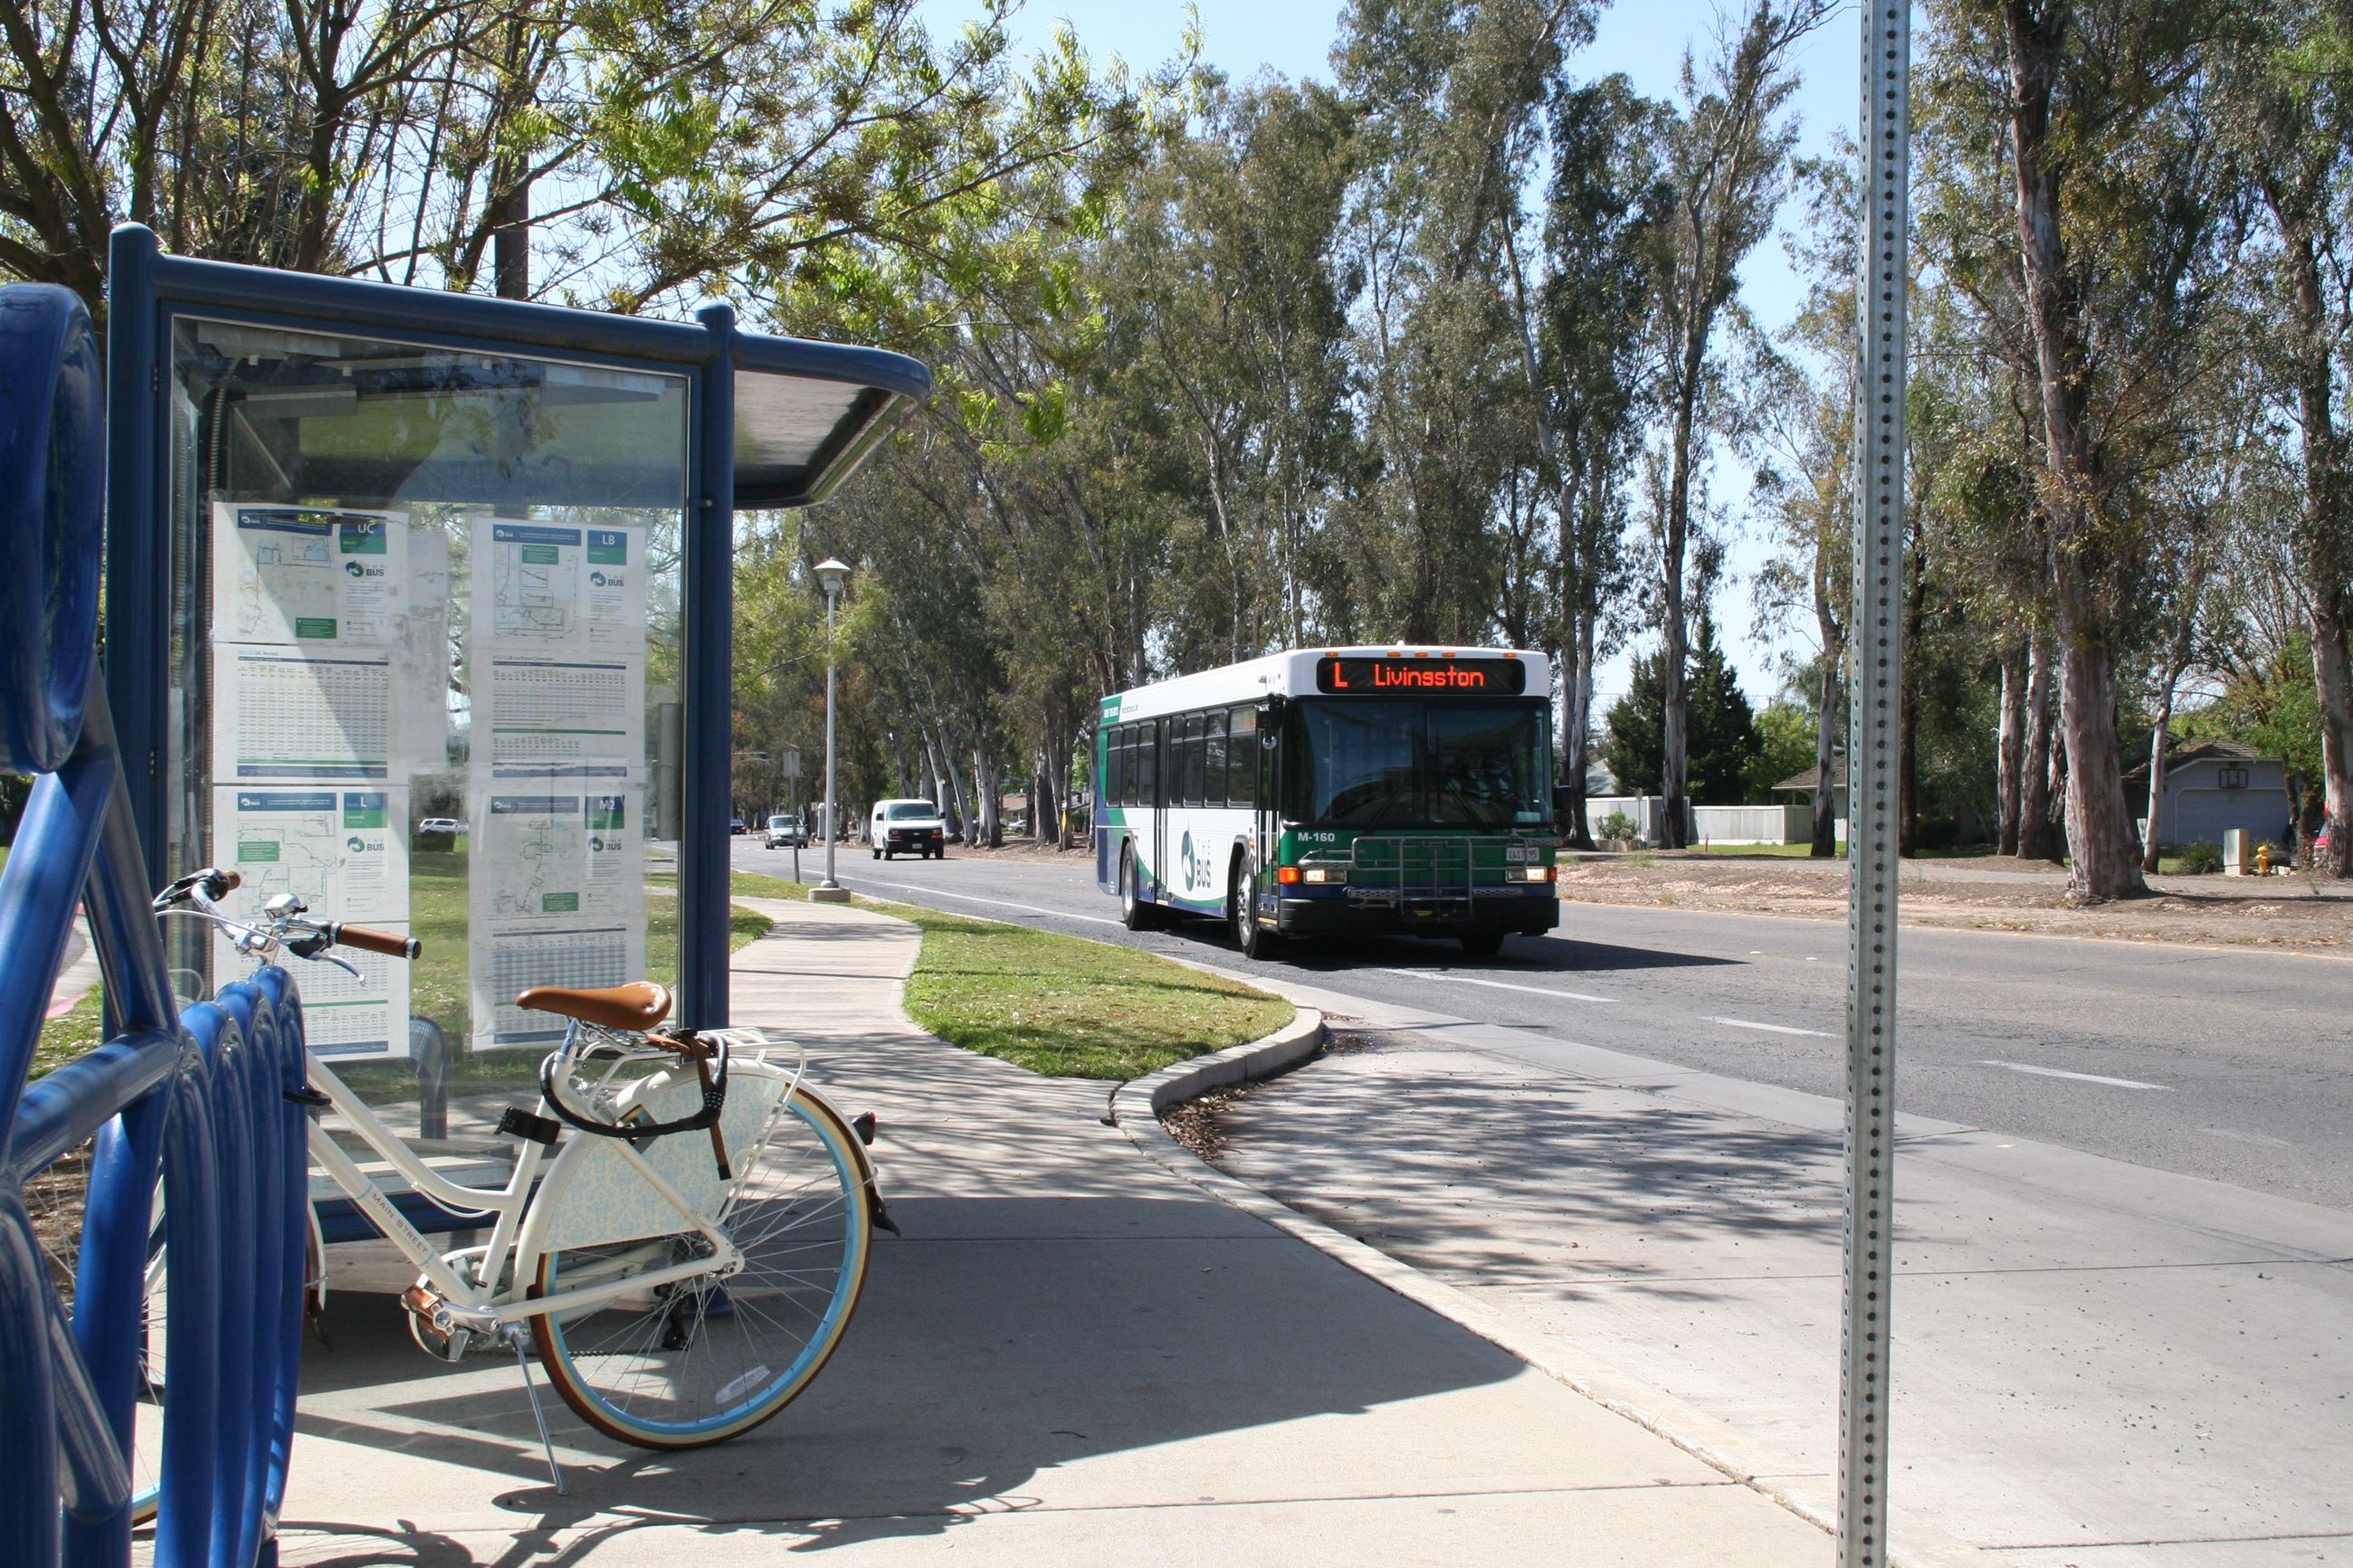 L - approaching bus stop with bicycle